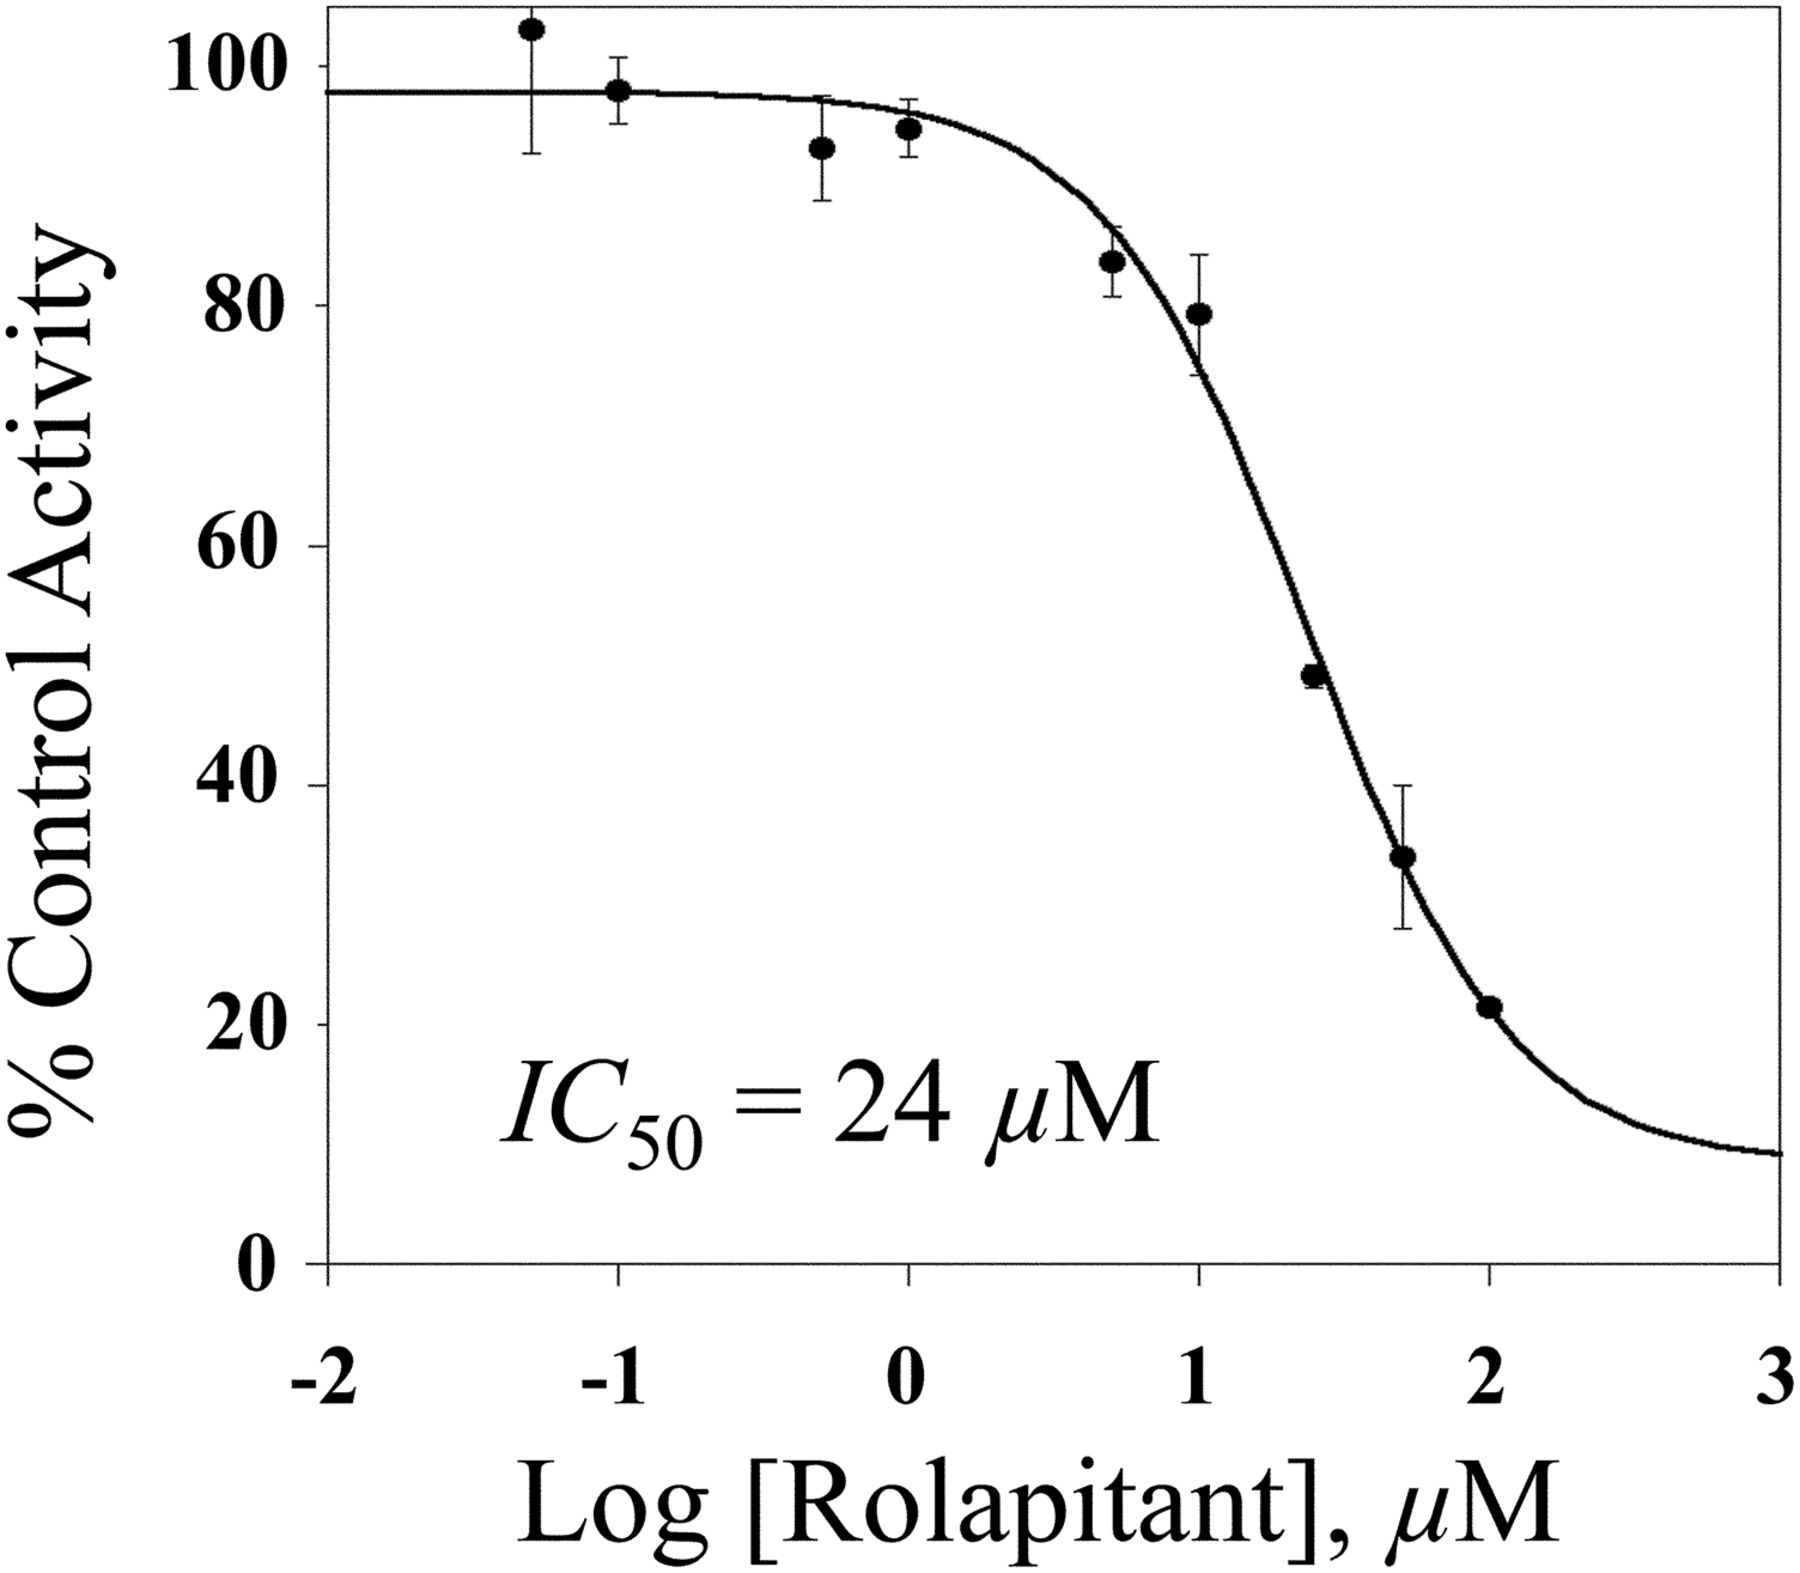 Rolapitant Is a Reversible Inhibitor of CYP2D6   Drug Metabolism